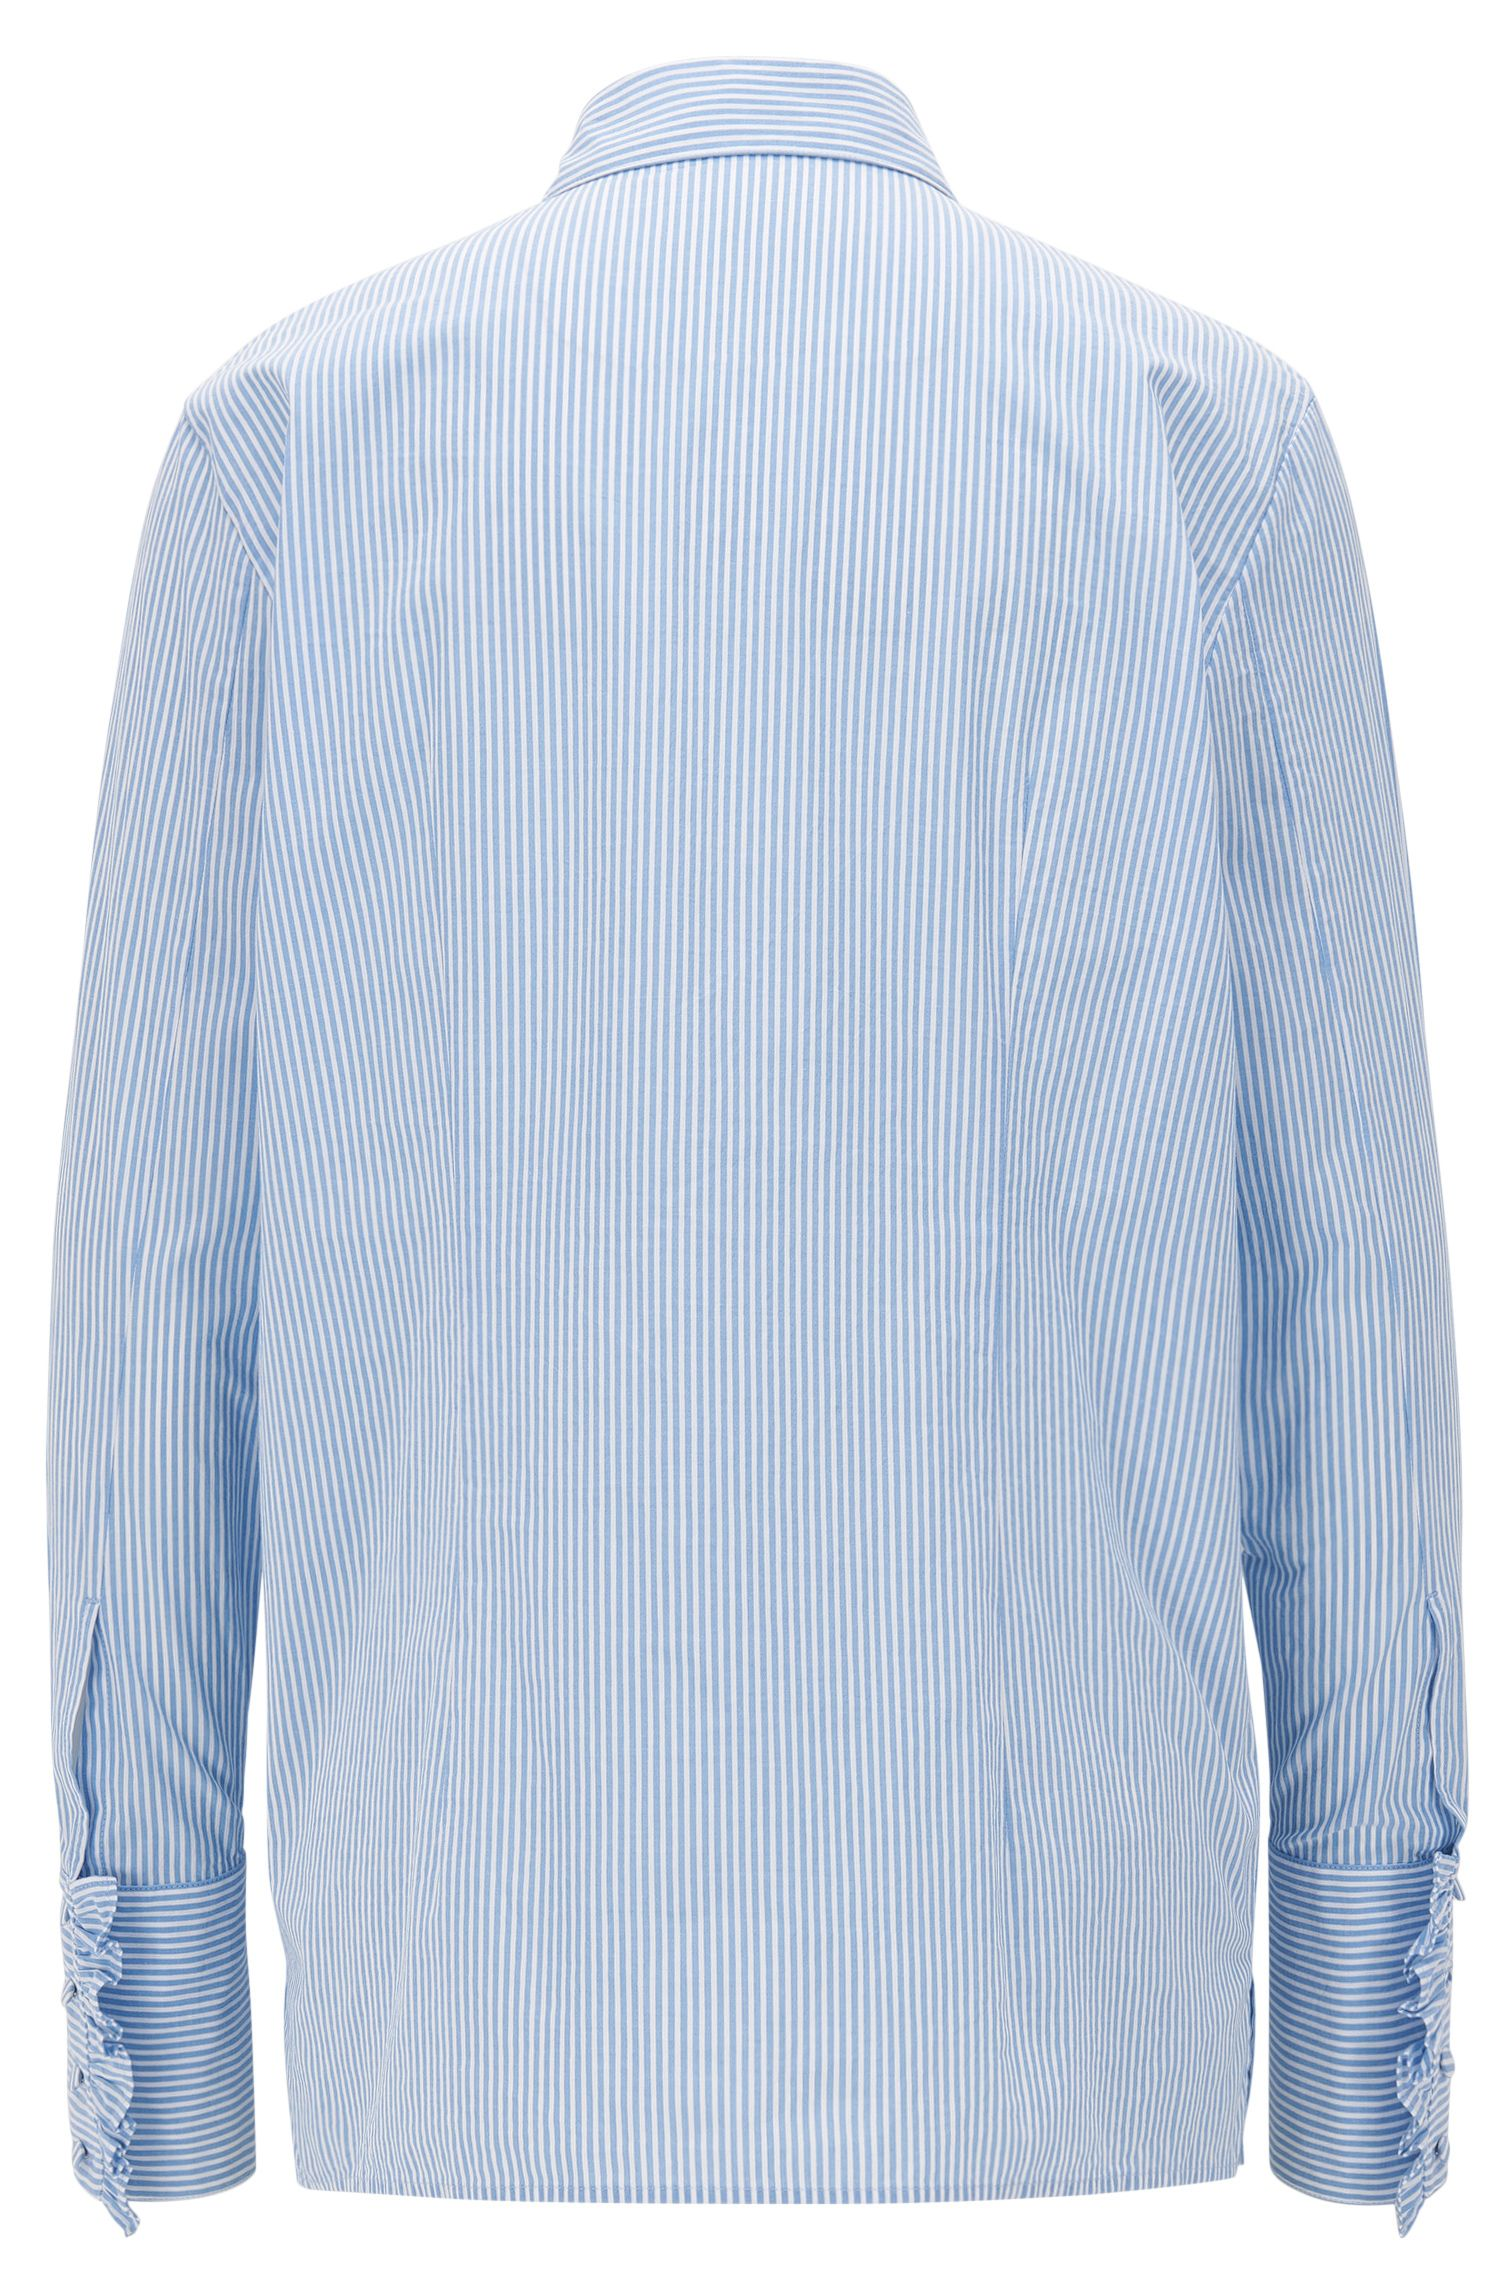 Relaxed-fit cotton shirt with ruffle placket